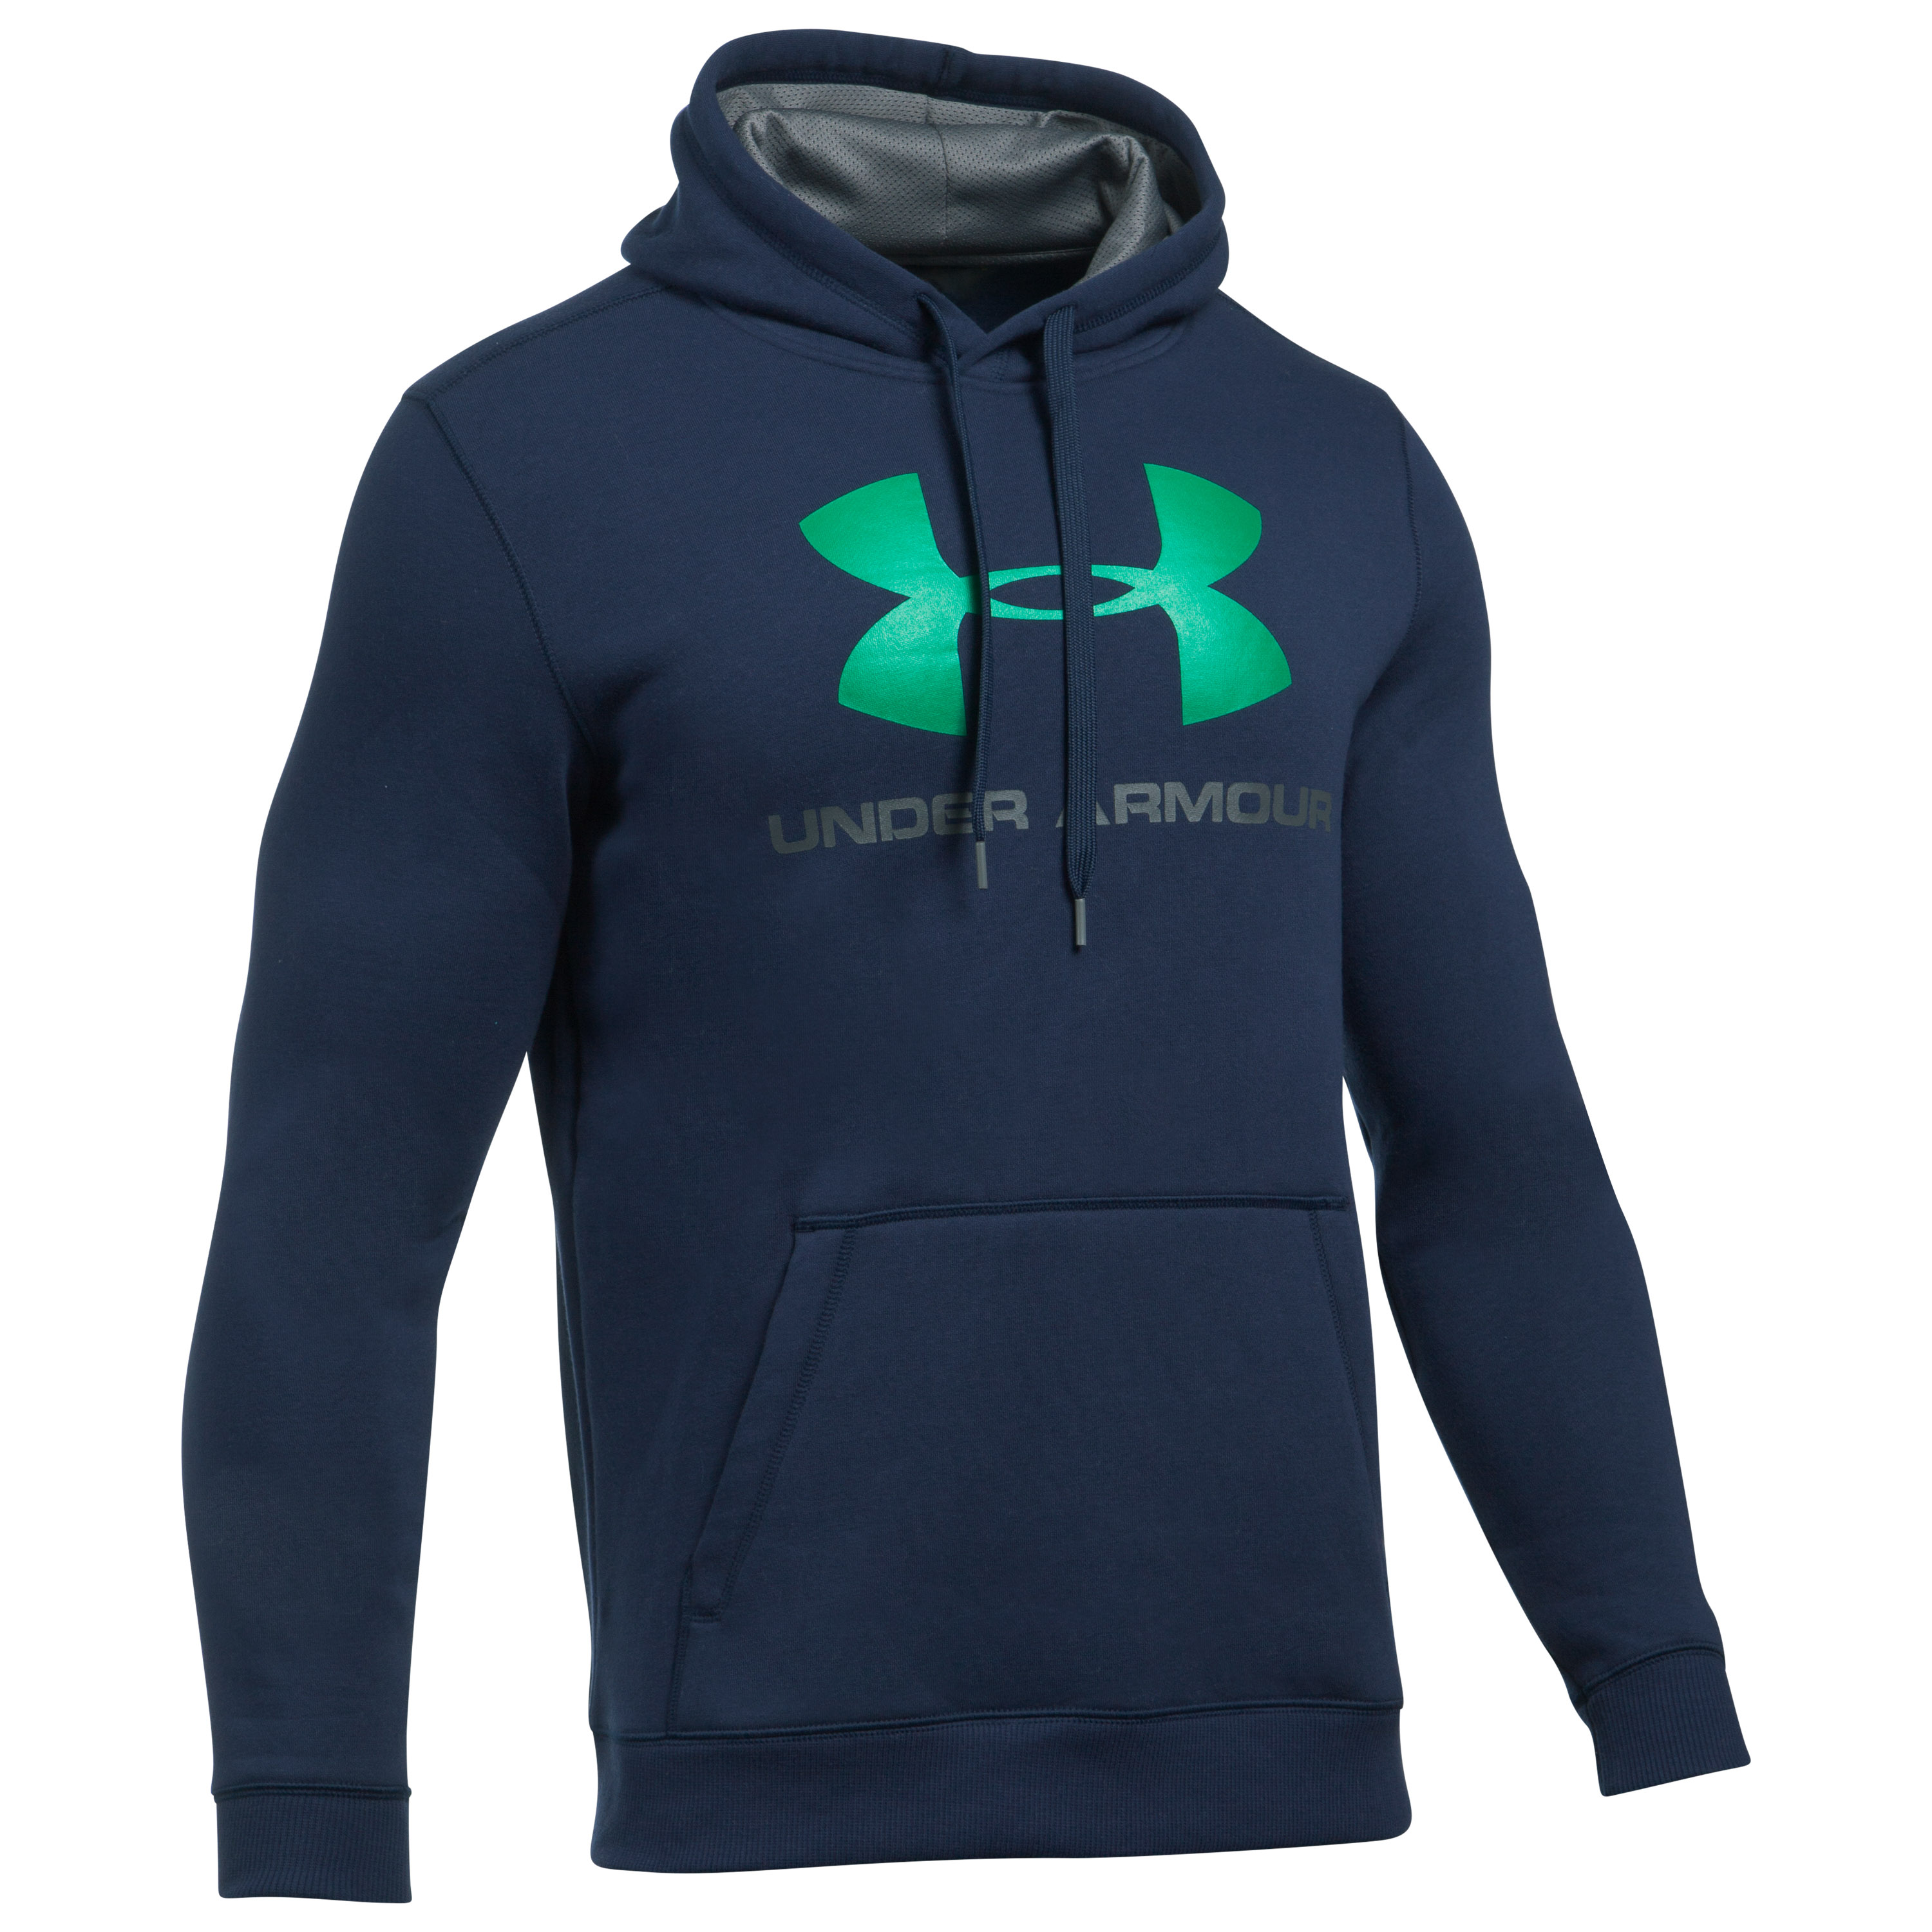 Under Armour Hoodie Rival Fitted Graphic blue/green